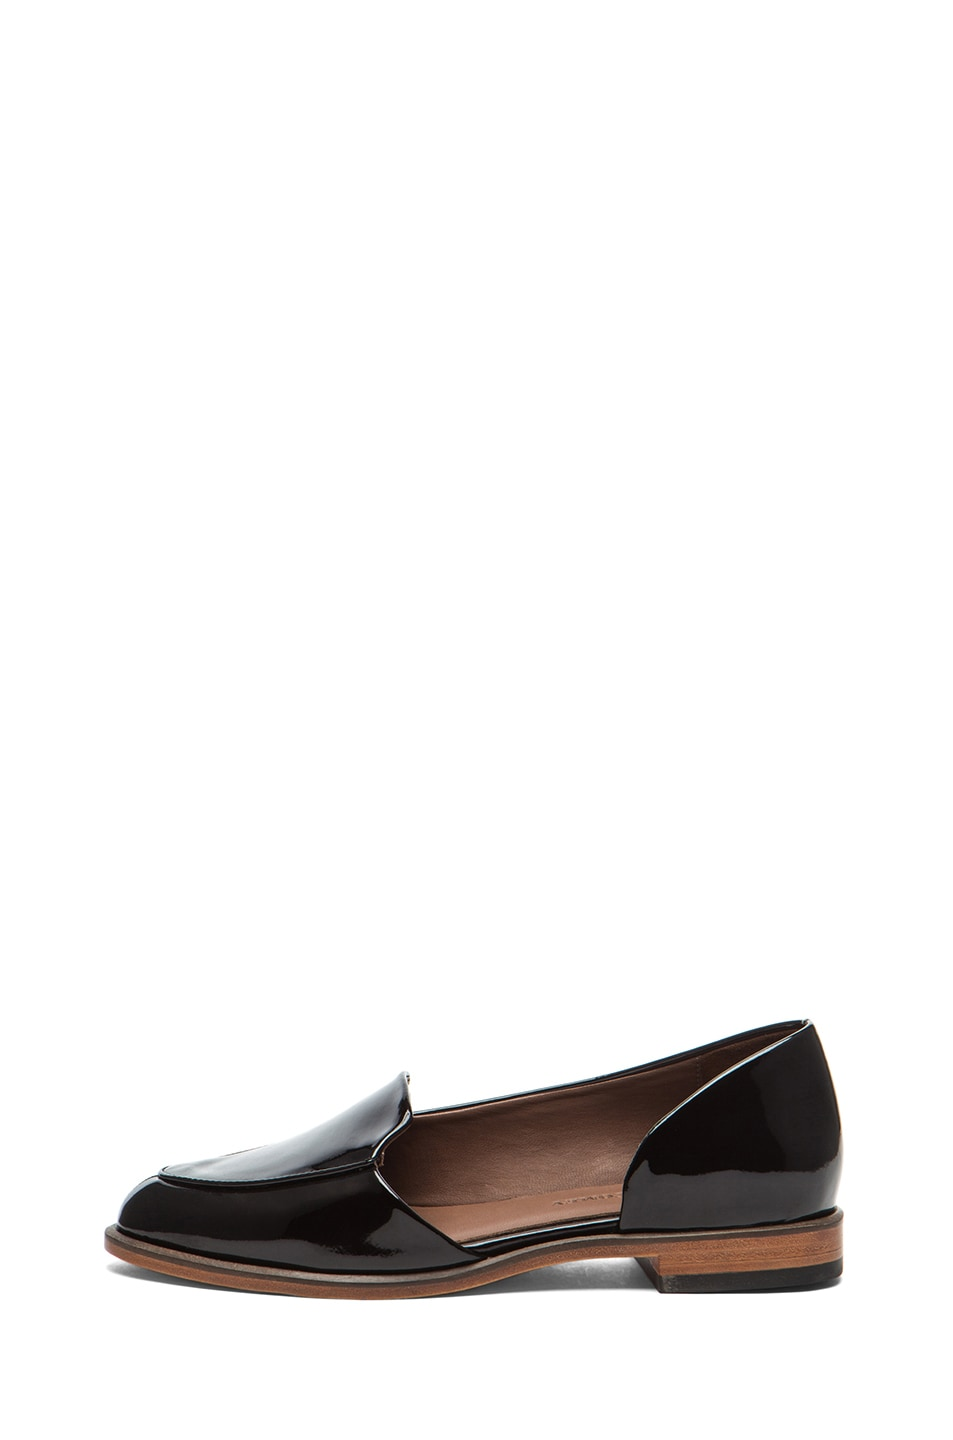 Image 1 of Rachel Comey Bolt Patent Leather Flats in Deep Plum